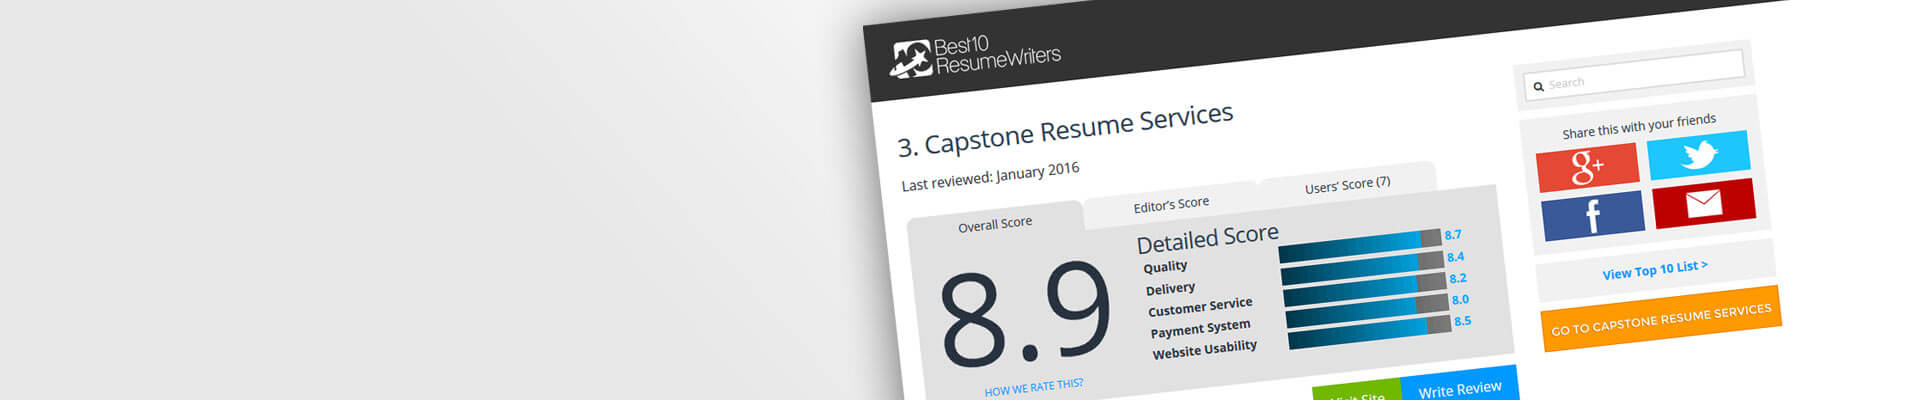 Certified Professional Resume Writers - Capstone Resume